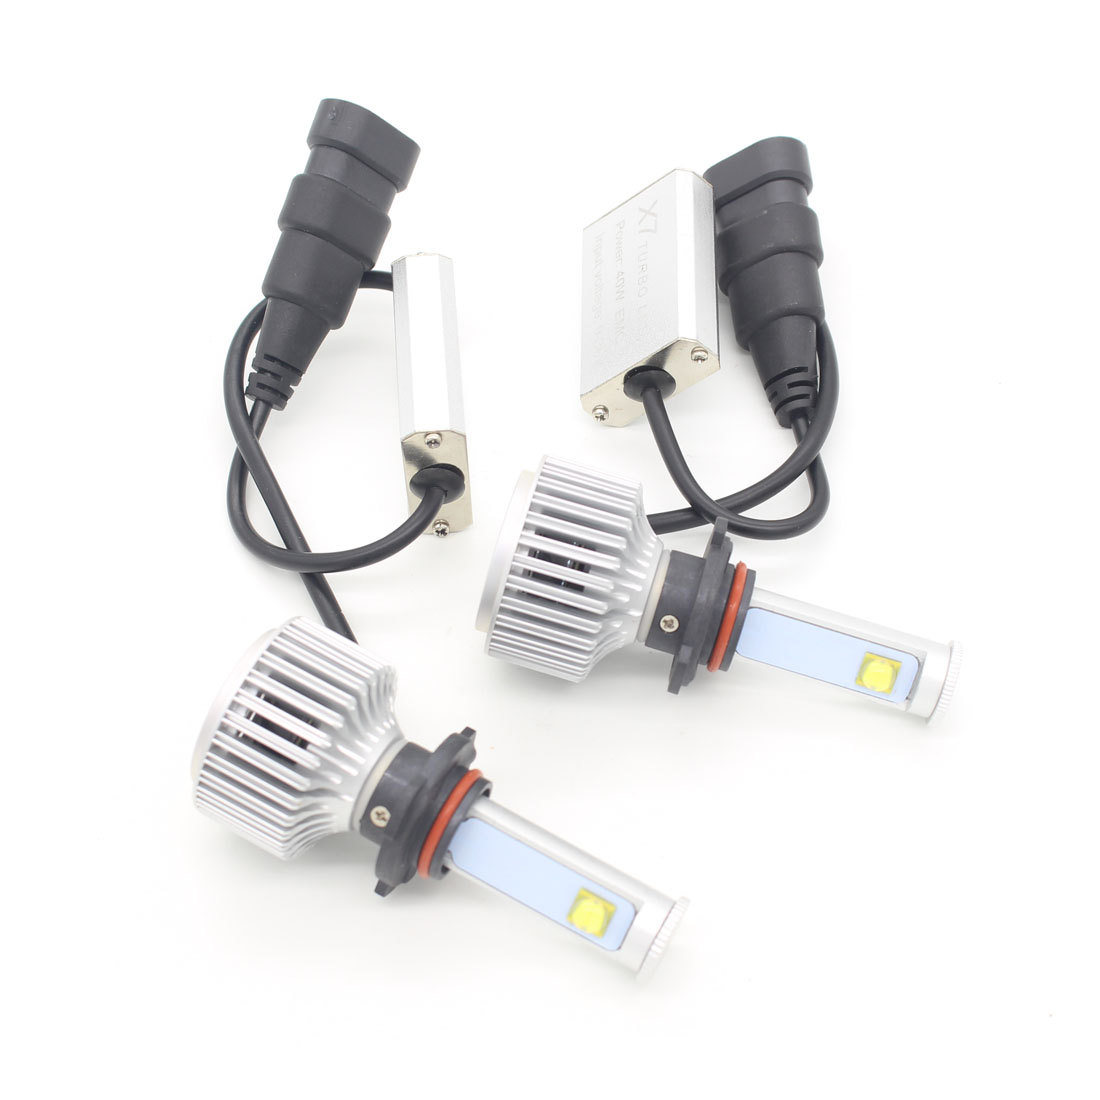 Set LED Car Auto Headlight External Light DRL Parking Fog Light Conversion Kit H11 H4 H7 H1 H13 H3 9006 9005 880 881 LED Bulb 2pcs set 72w 7200lm h7 cob led car headlight headlamp auto lamps led kit 6000k headlight bulb light car headlight fog light